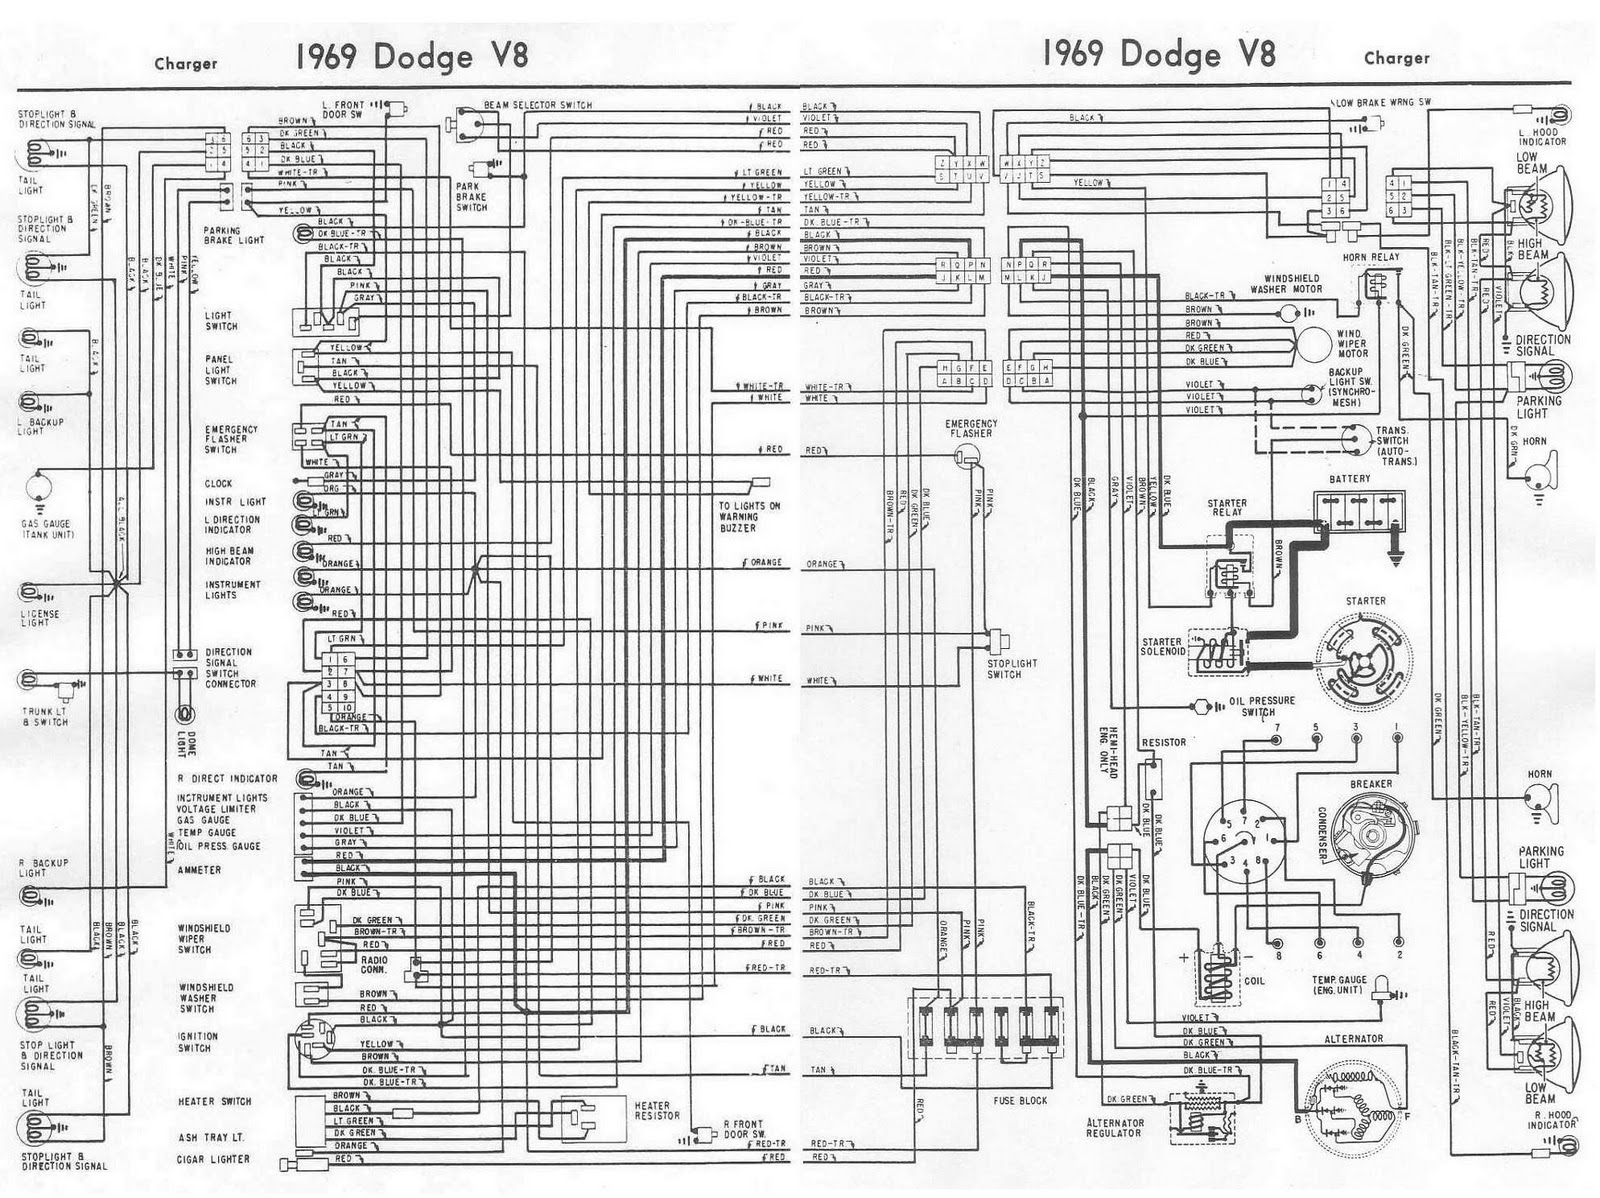 1969 Ford Fairlane Wiring Diagram Library 1966 Galaxie Harness Dodge Charger V8 Complete Electrical